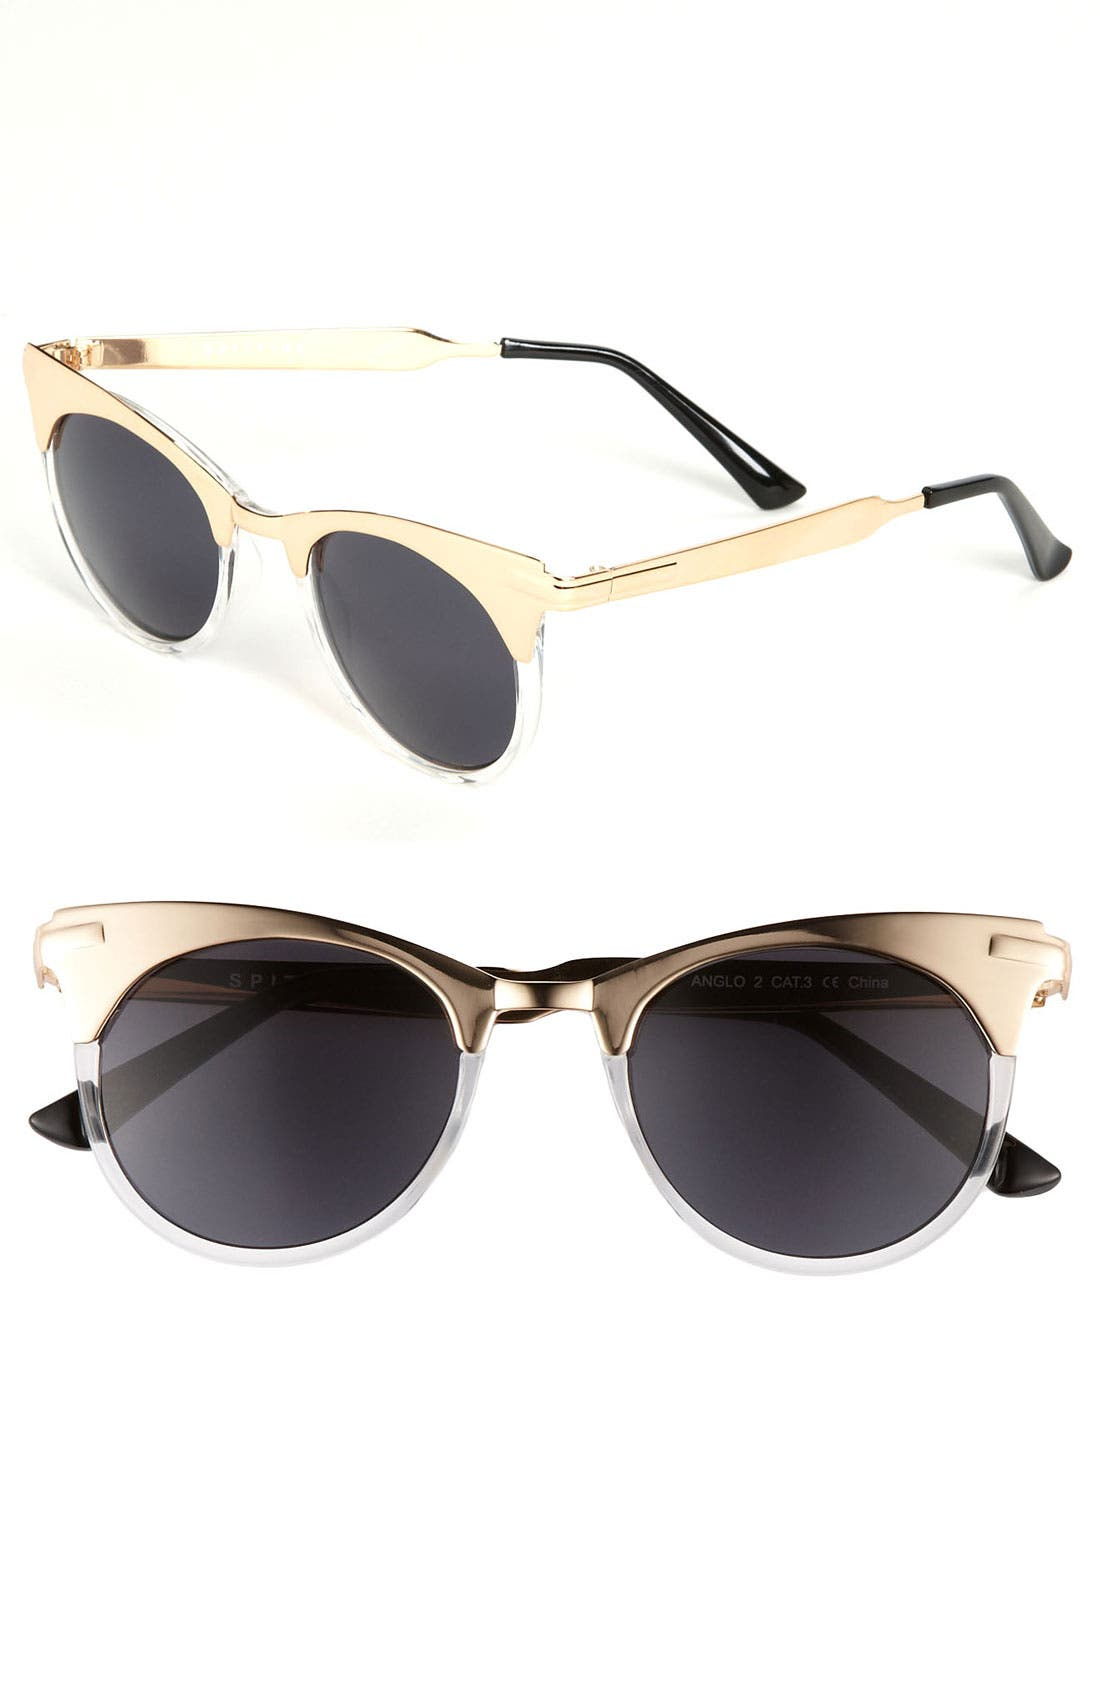 Main Image - Spitfire 49mm Cat's Eye Sunglasses